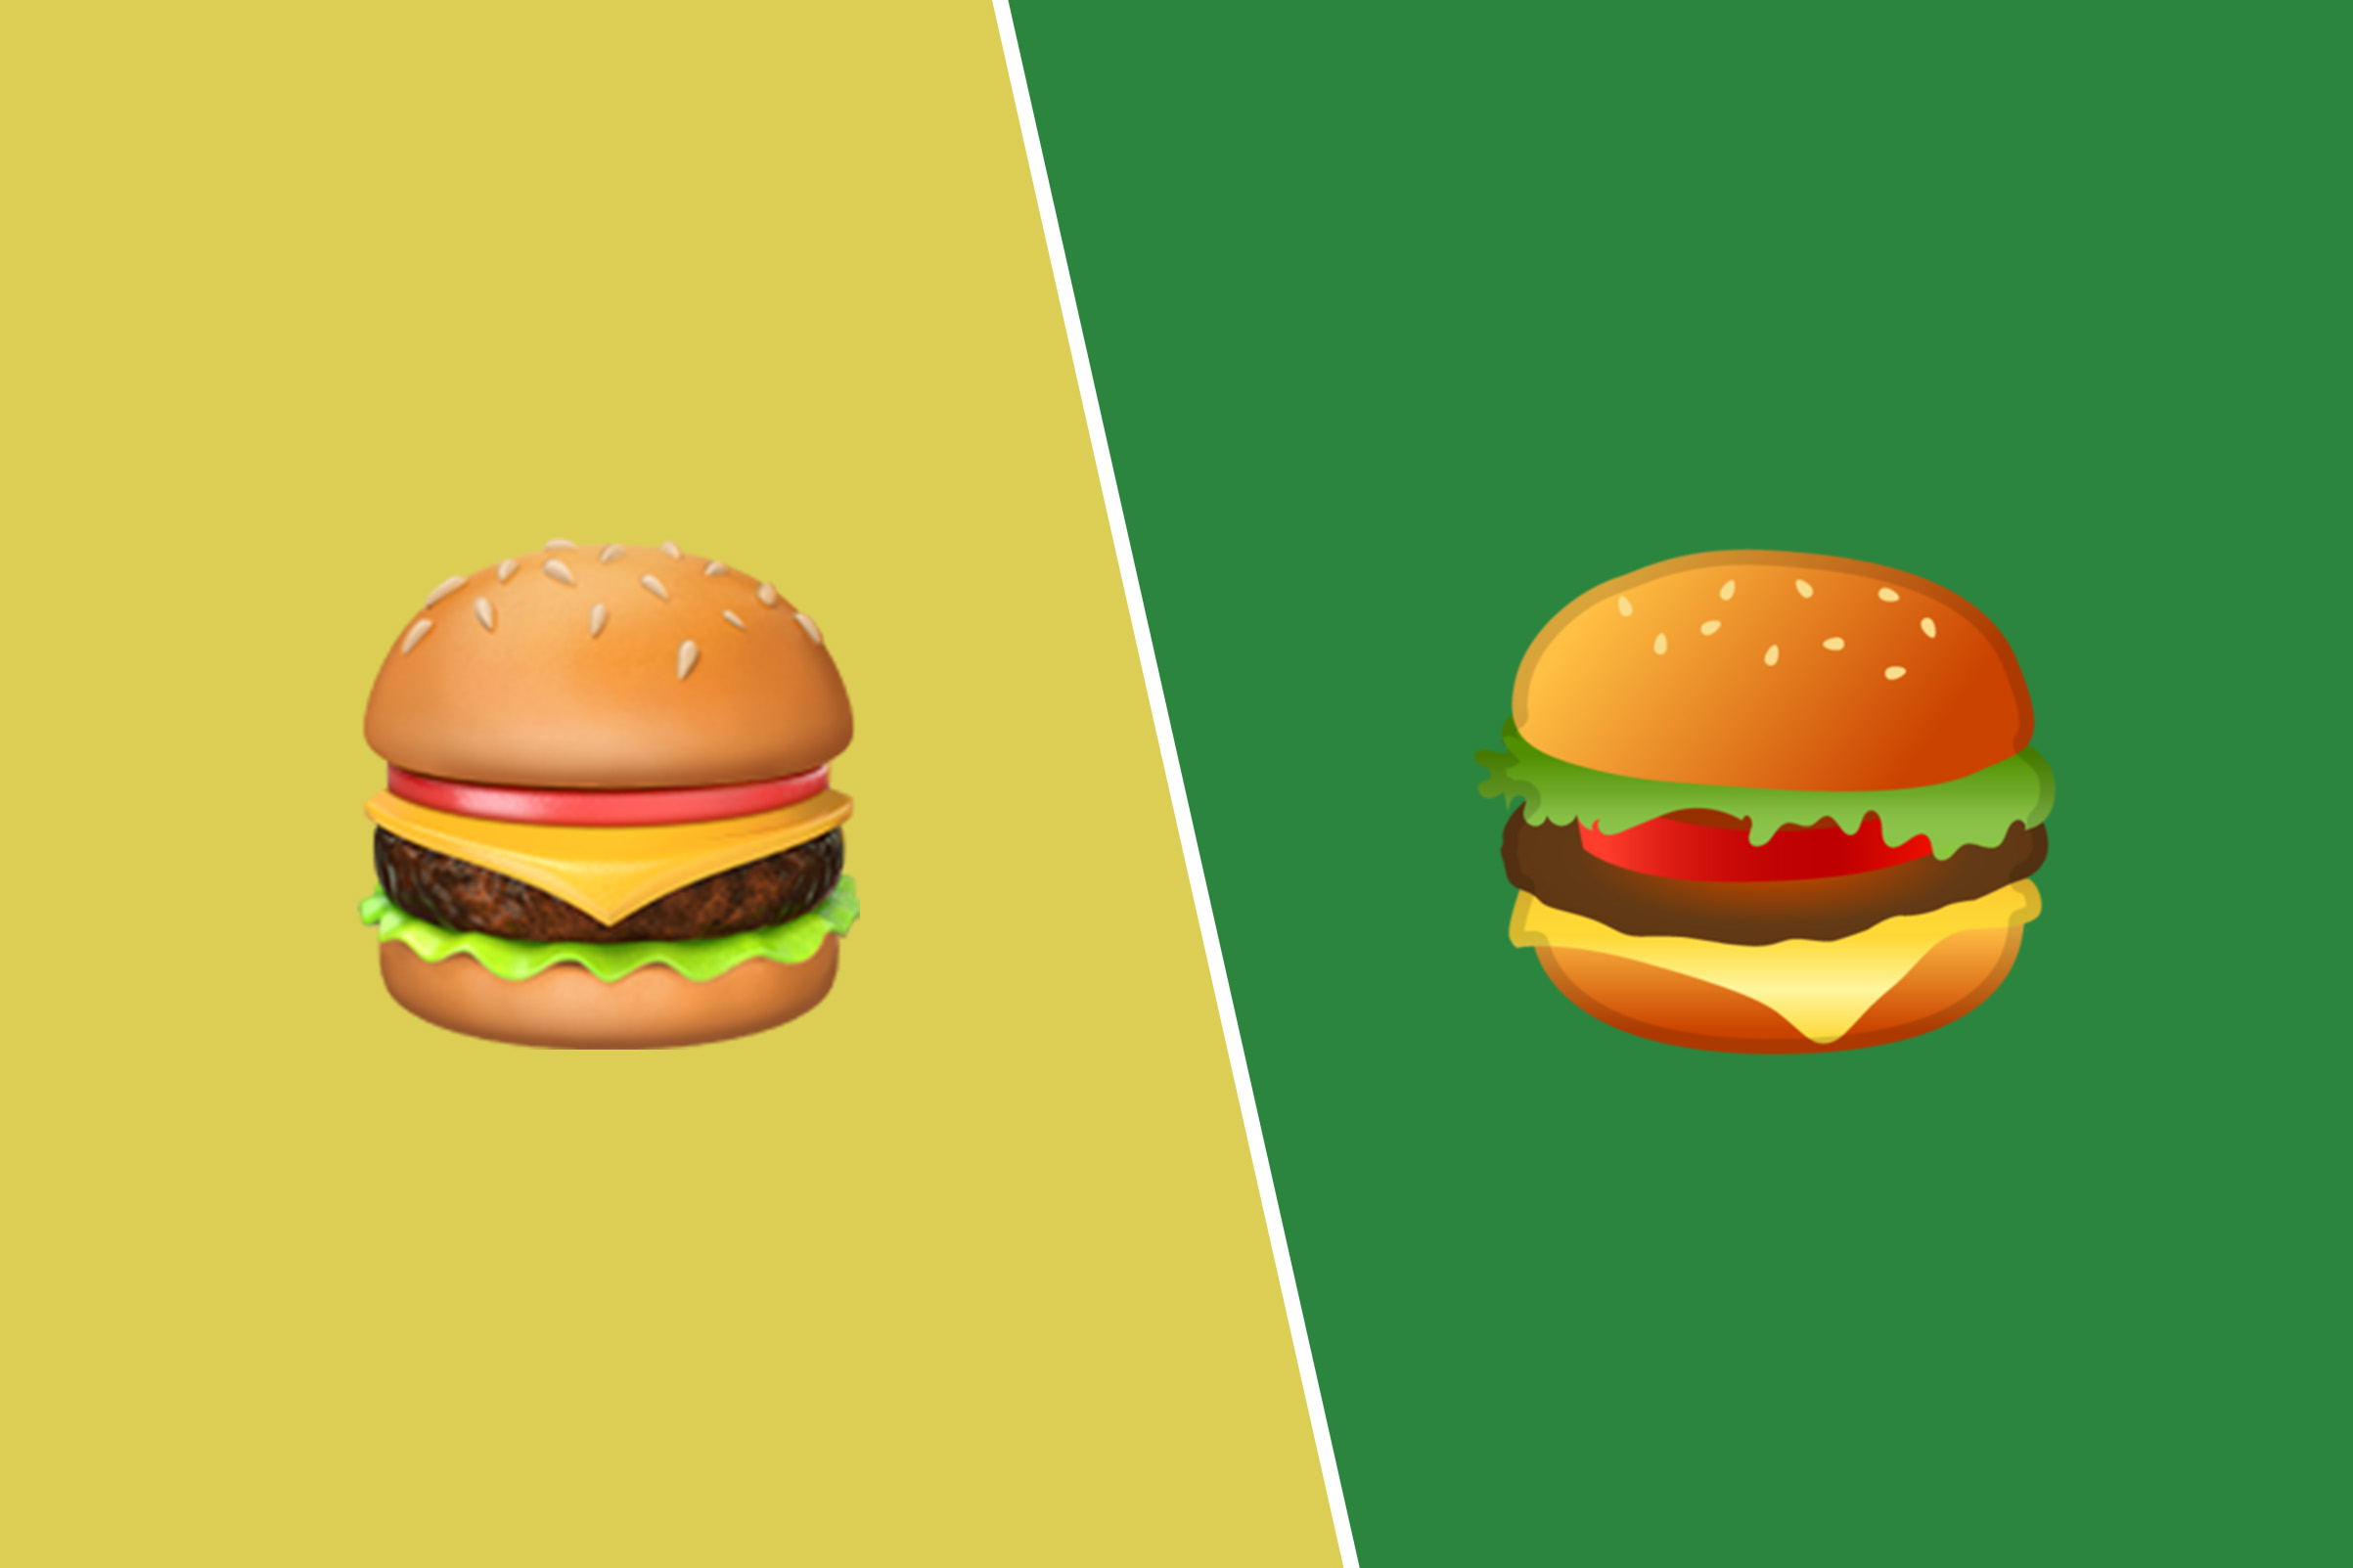 Left, Hamburger on Apple iOS 10.3; Right, Hamburger on Google Android 8.0.